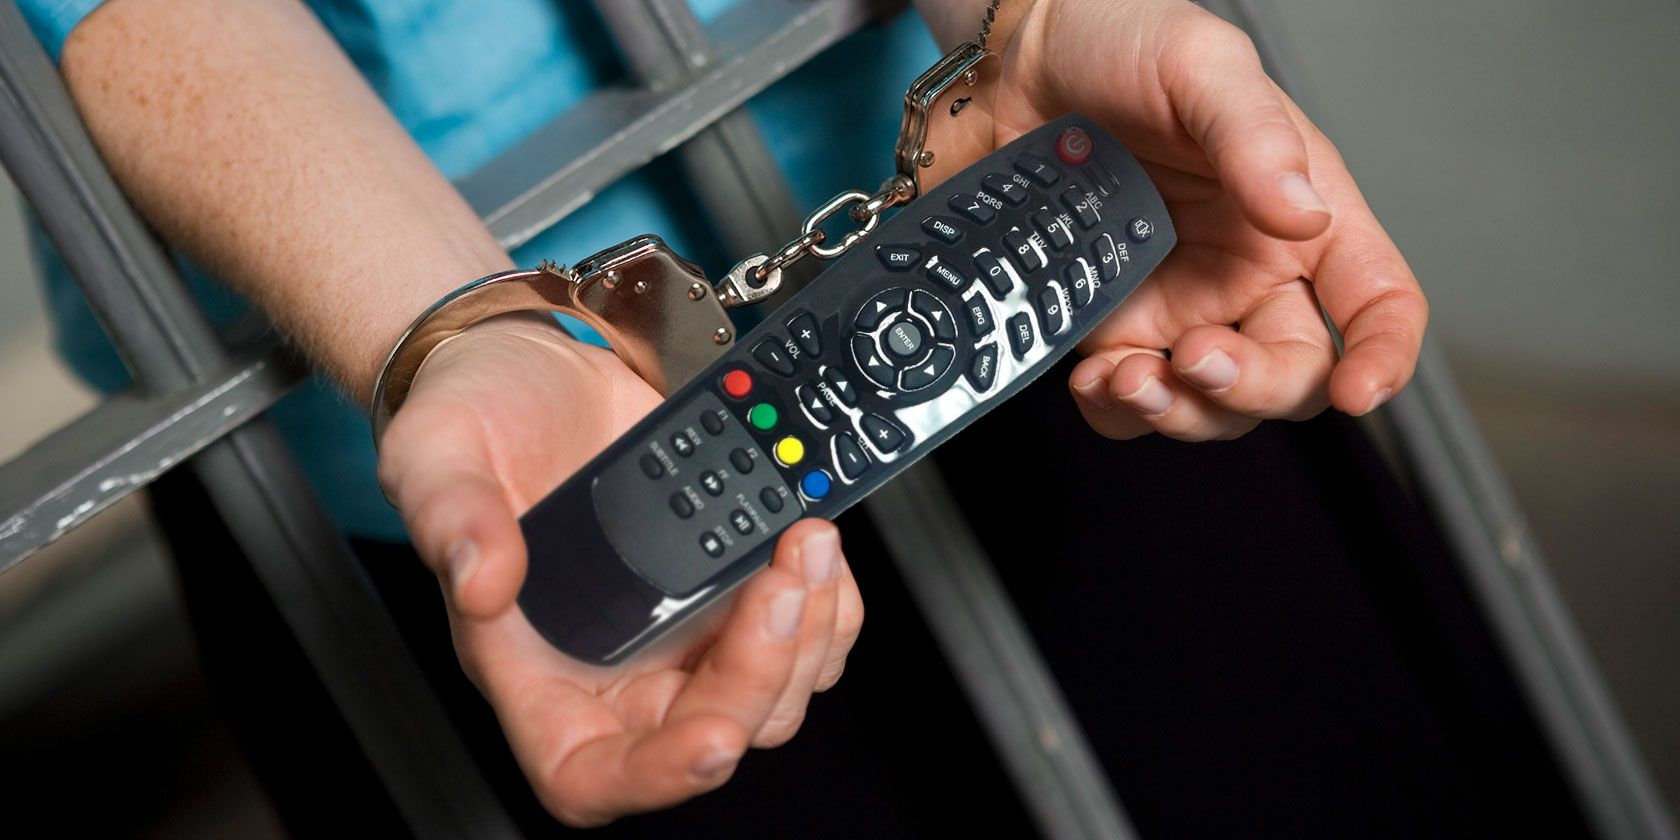 5 Reasons Why Using Illegal IPTV Streams Is a Bad Idea | iJailbreak